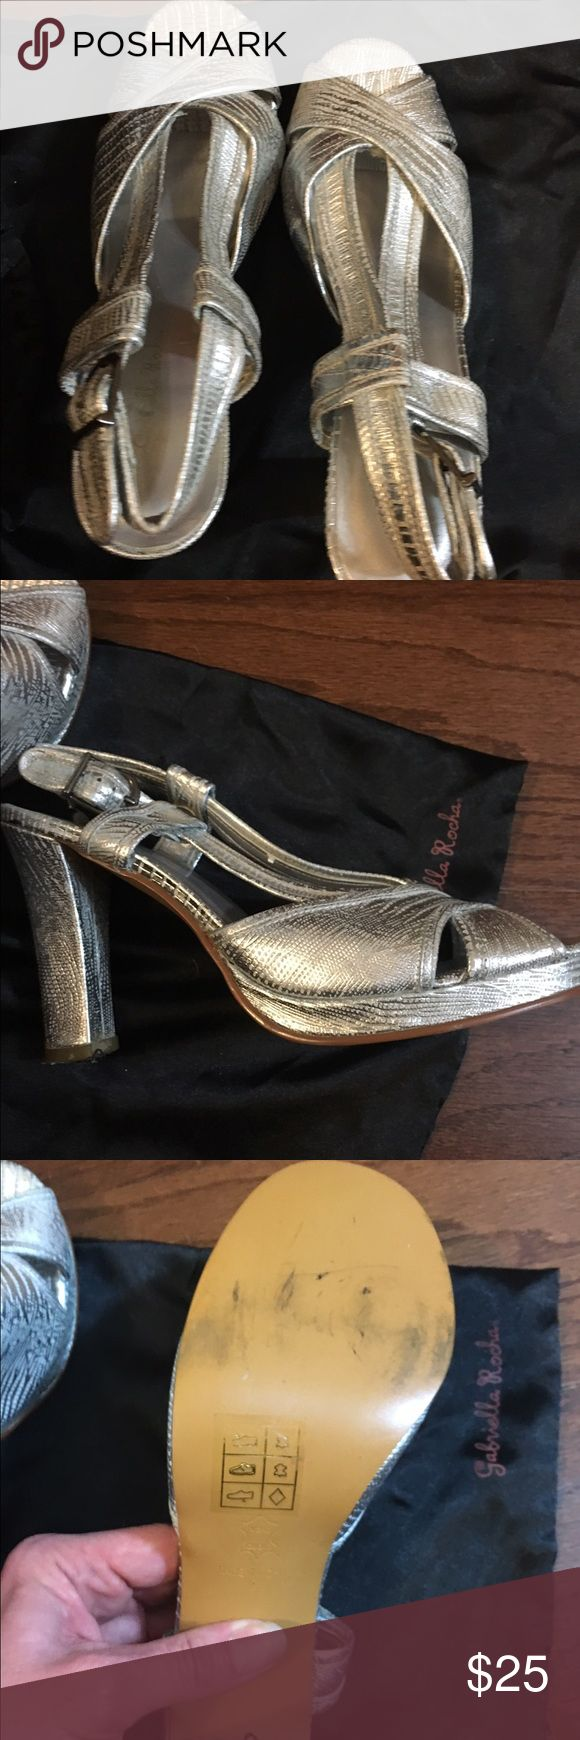 Gabriella Rocha silver heels 6 1/2 I wore once for an occasion comes with dust bag about a 4 inch heel price is firm Gabriella Rocha Shoes Heels